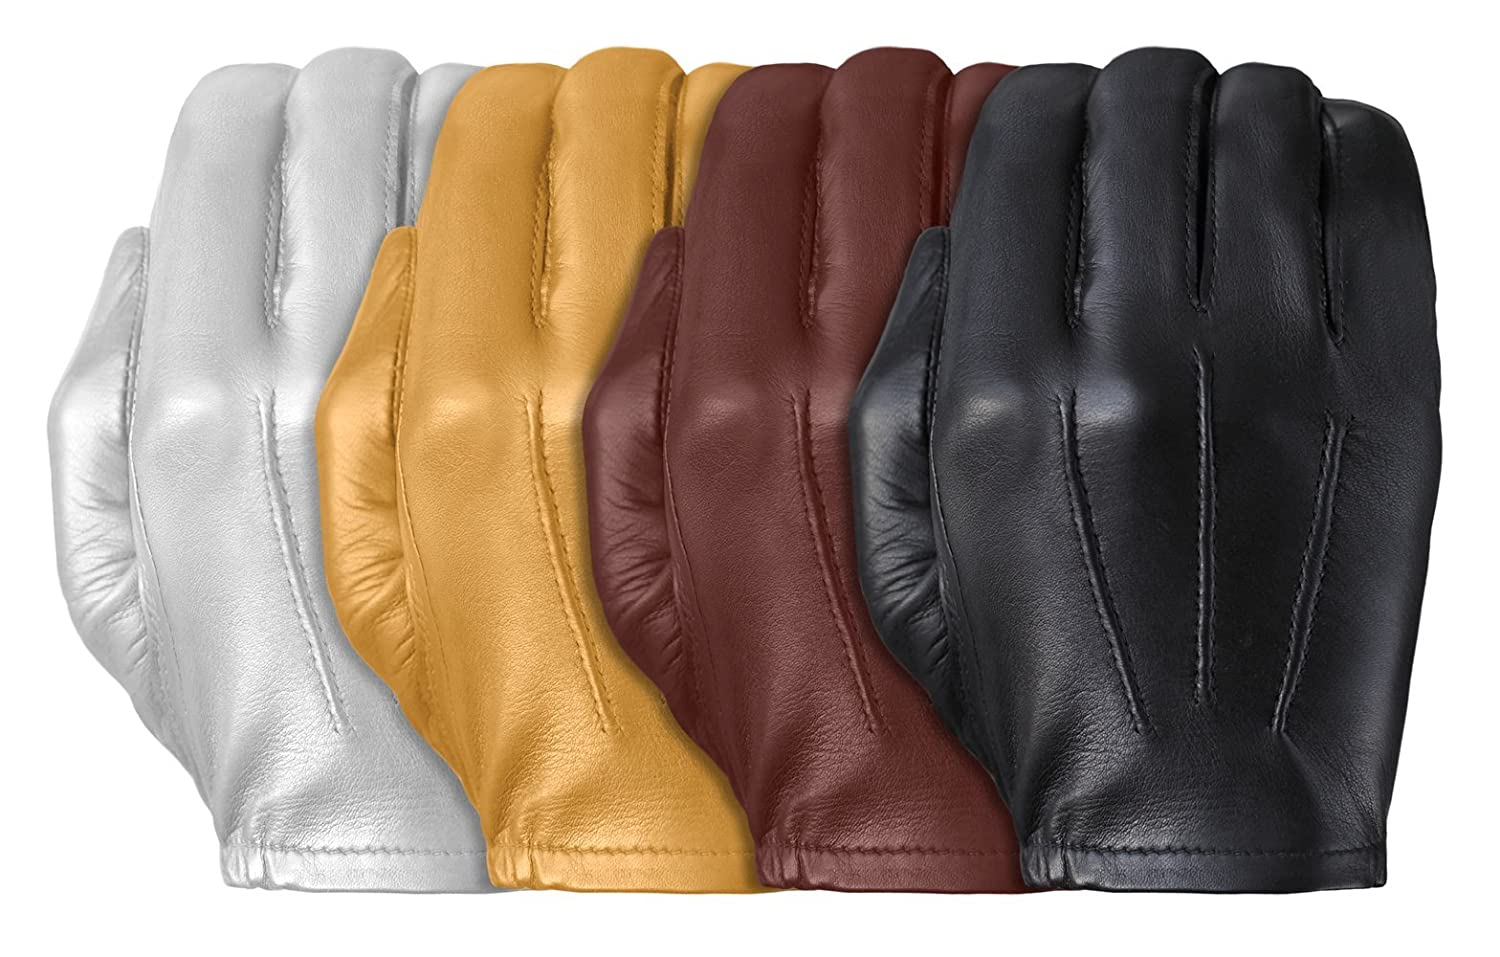 Mens leather gloves online india - Tough Gloves Men S Ultra Thin Patrol Cabretta Unlined Leather Gloves Size 6 Color Black At Amazon Men S Clothing Store Cold Weather Gloves